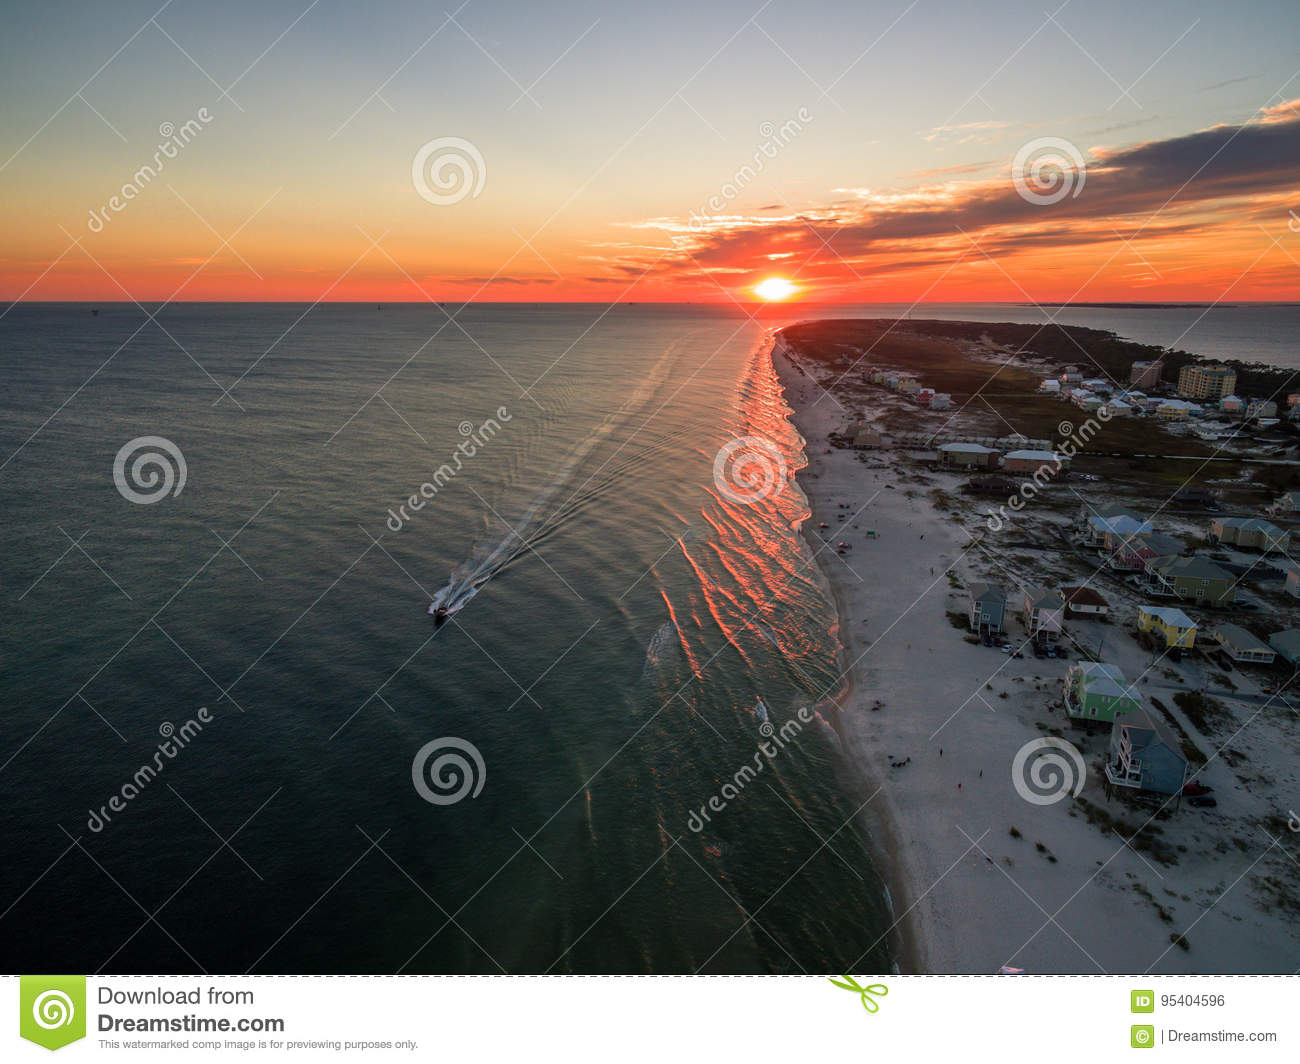 Aerial Drone Sunset Photo - Ocean & Beaches of Gulf Shores / Fort Morgan Alabama